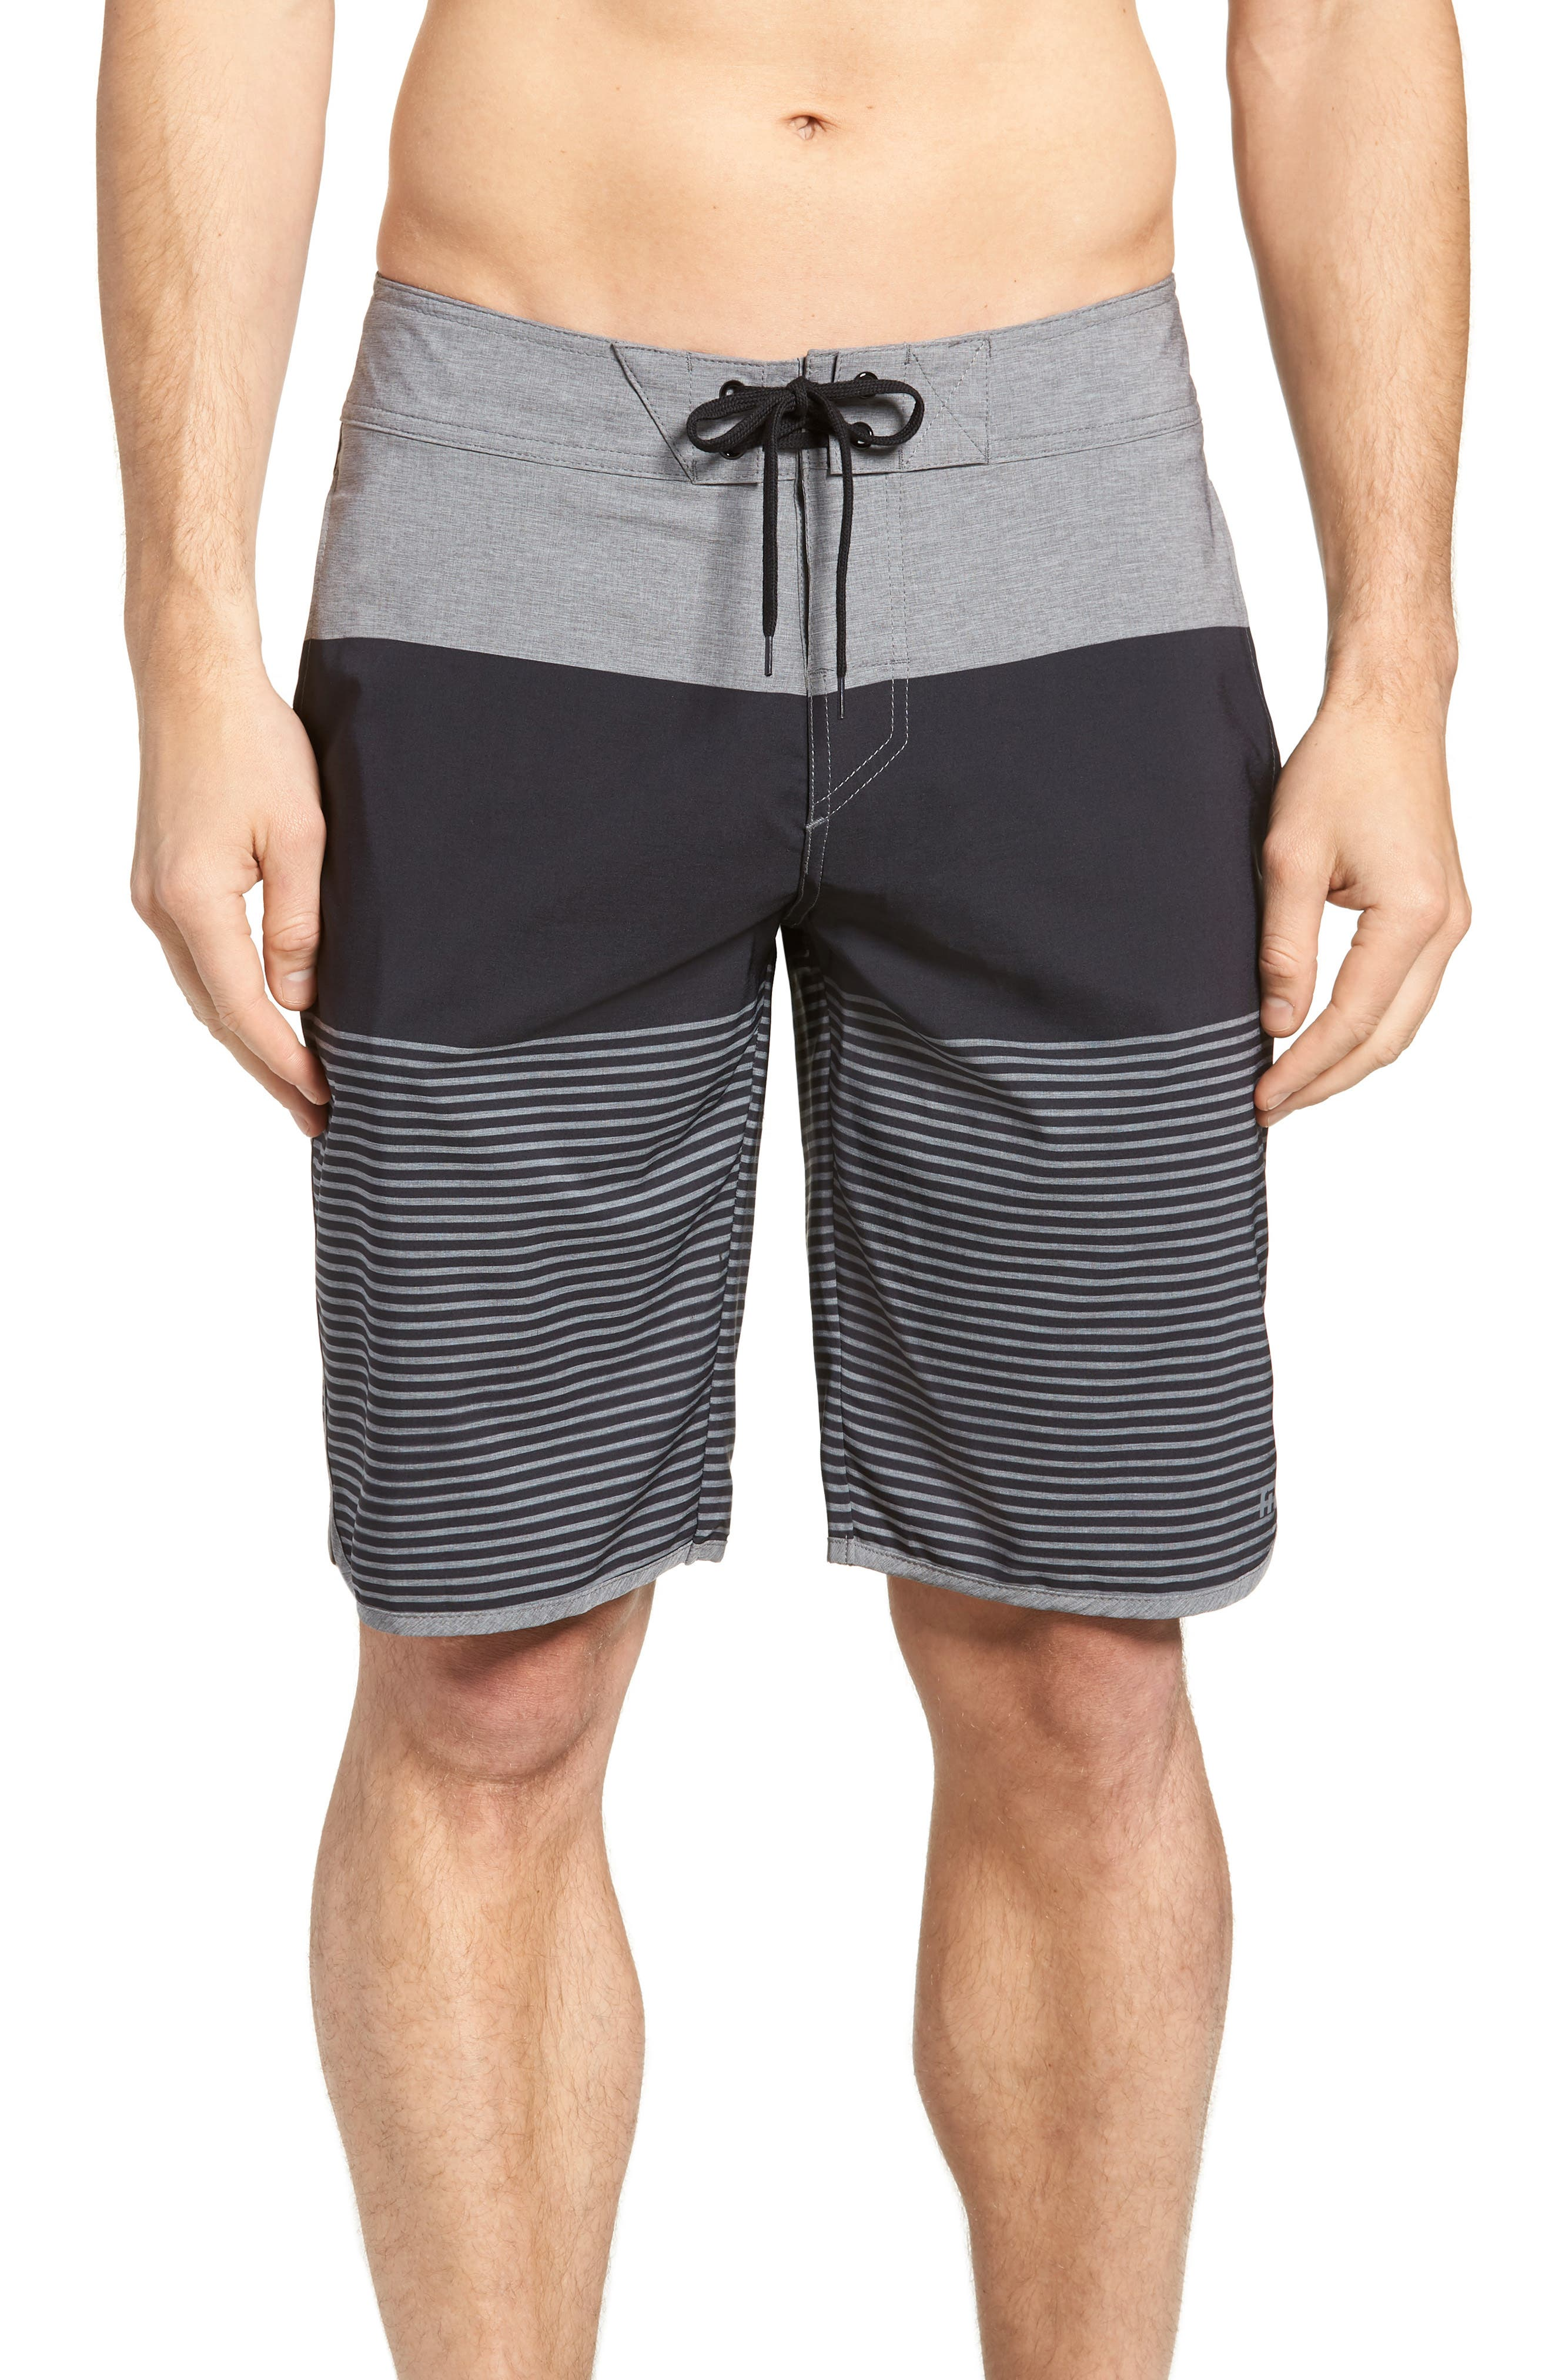 Claim It Regular Fit Board Shorts,                             Main thumbnail 1, color,                             Heather Black